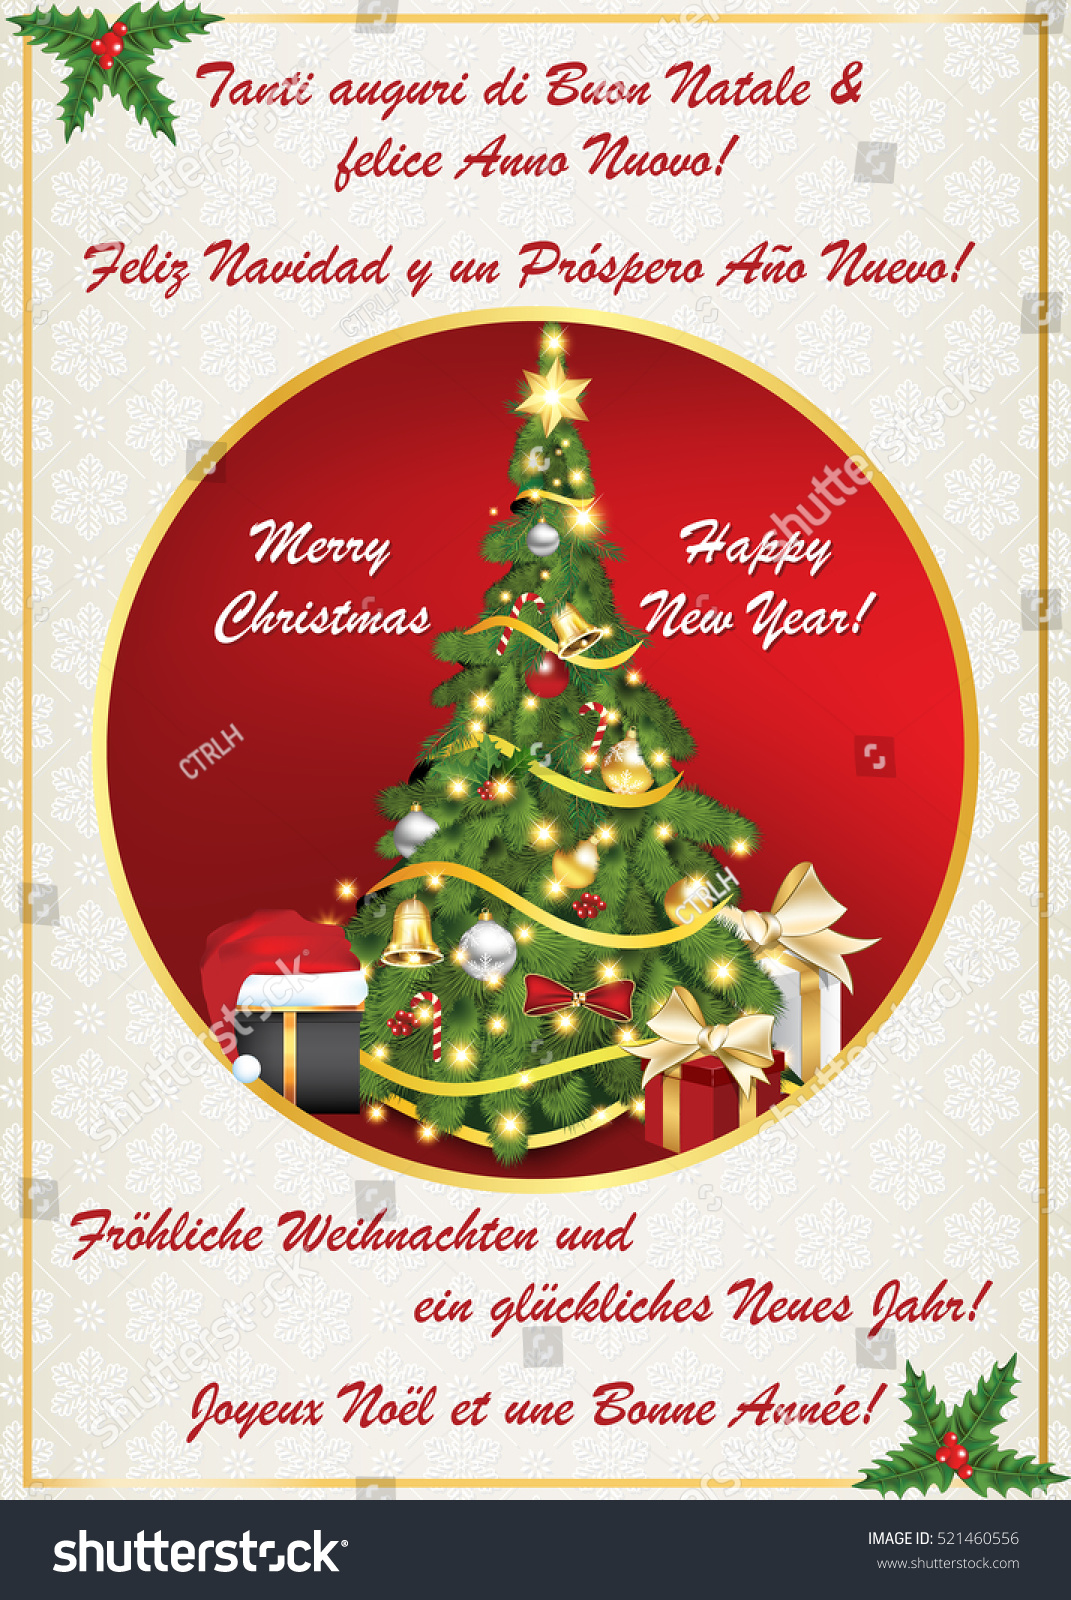 Multilanguage classic winter holiday greeting card stock multilanguage classic winter holiday greeting card merry christmas and happy new year italian m4hsunfo